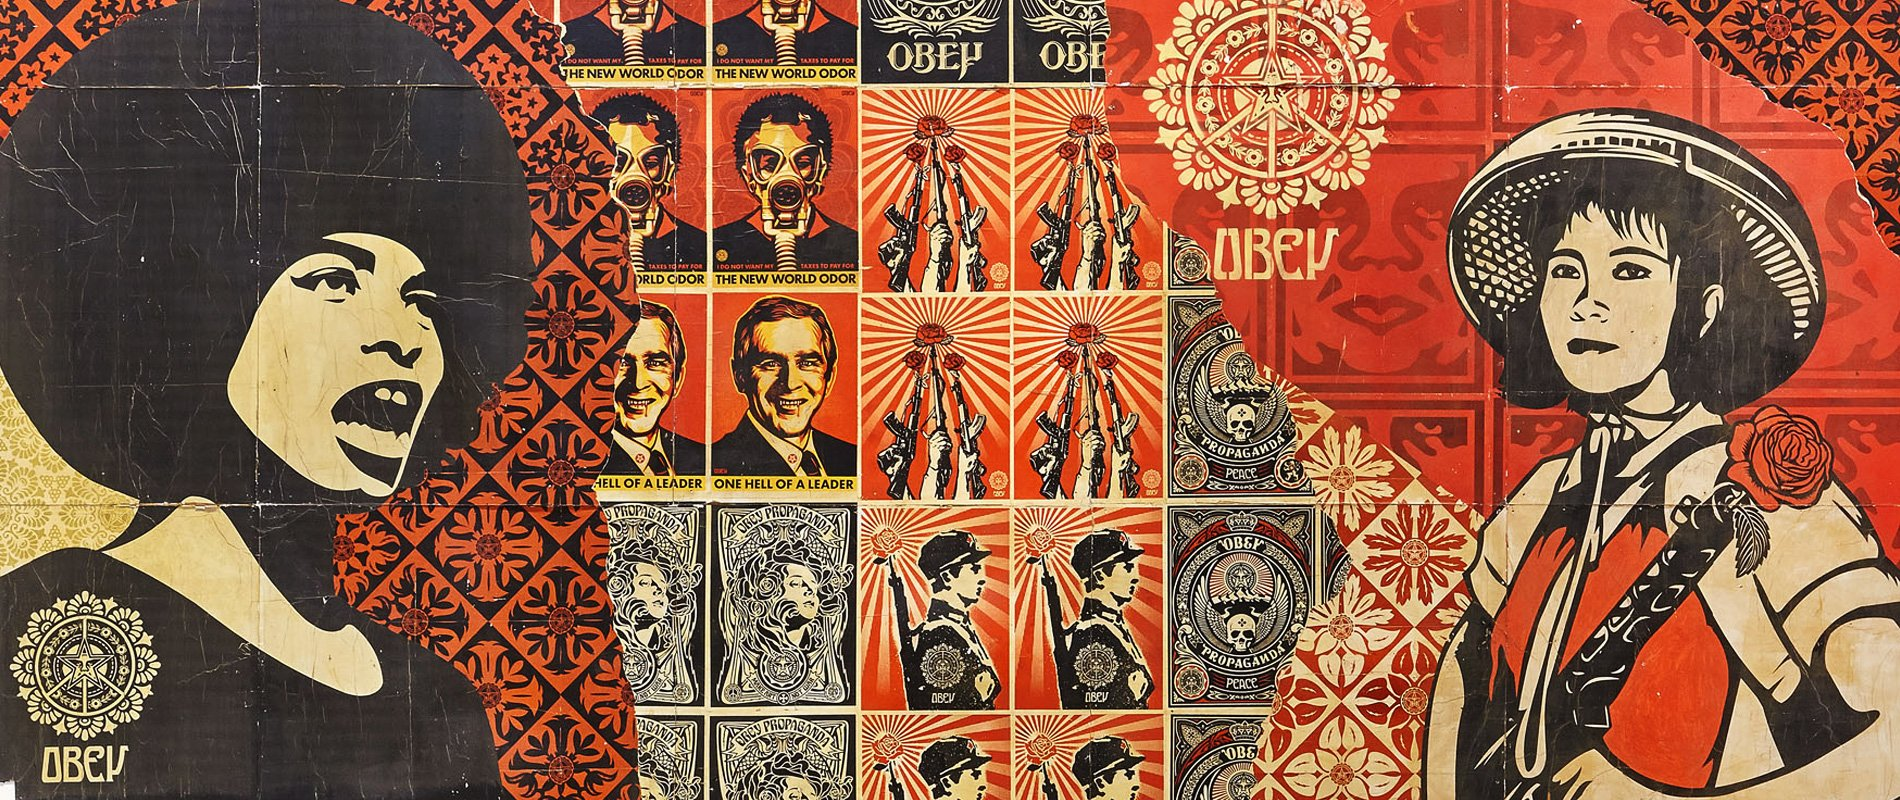 shepard fairey #obey the giant drago publisher